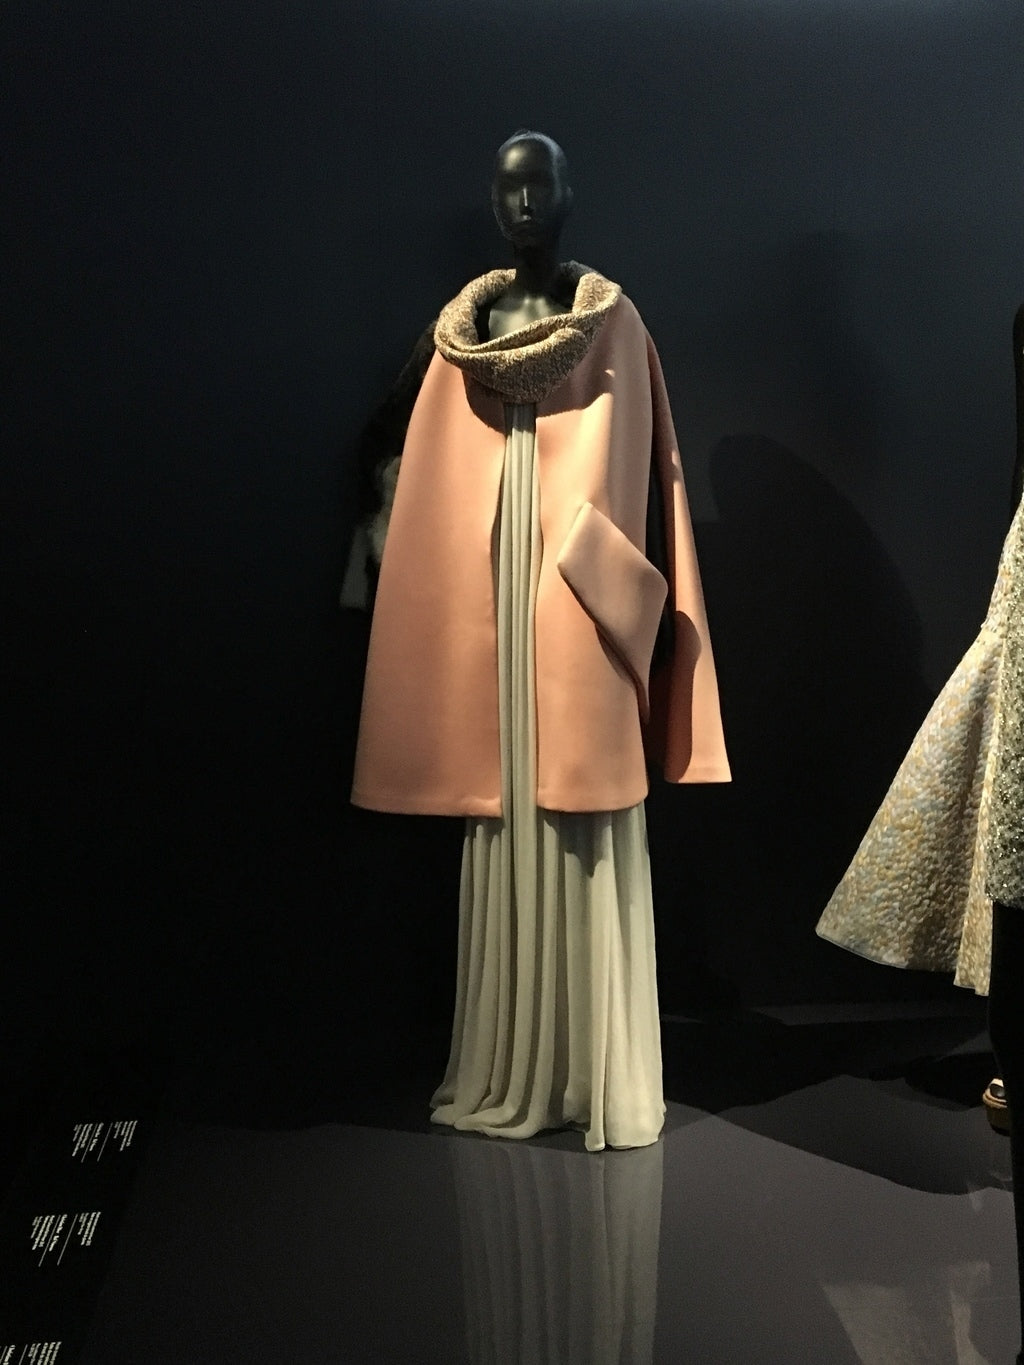 Christian Dior Exhibition